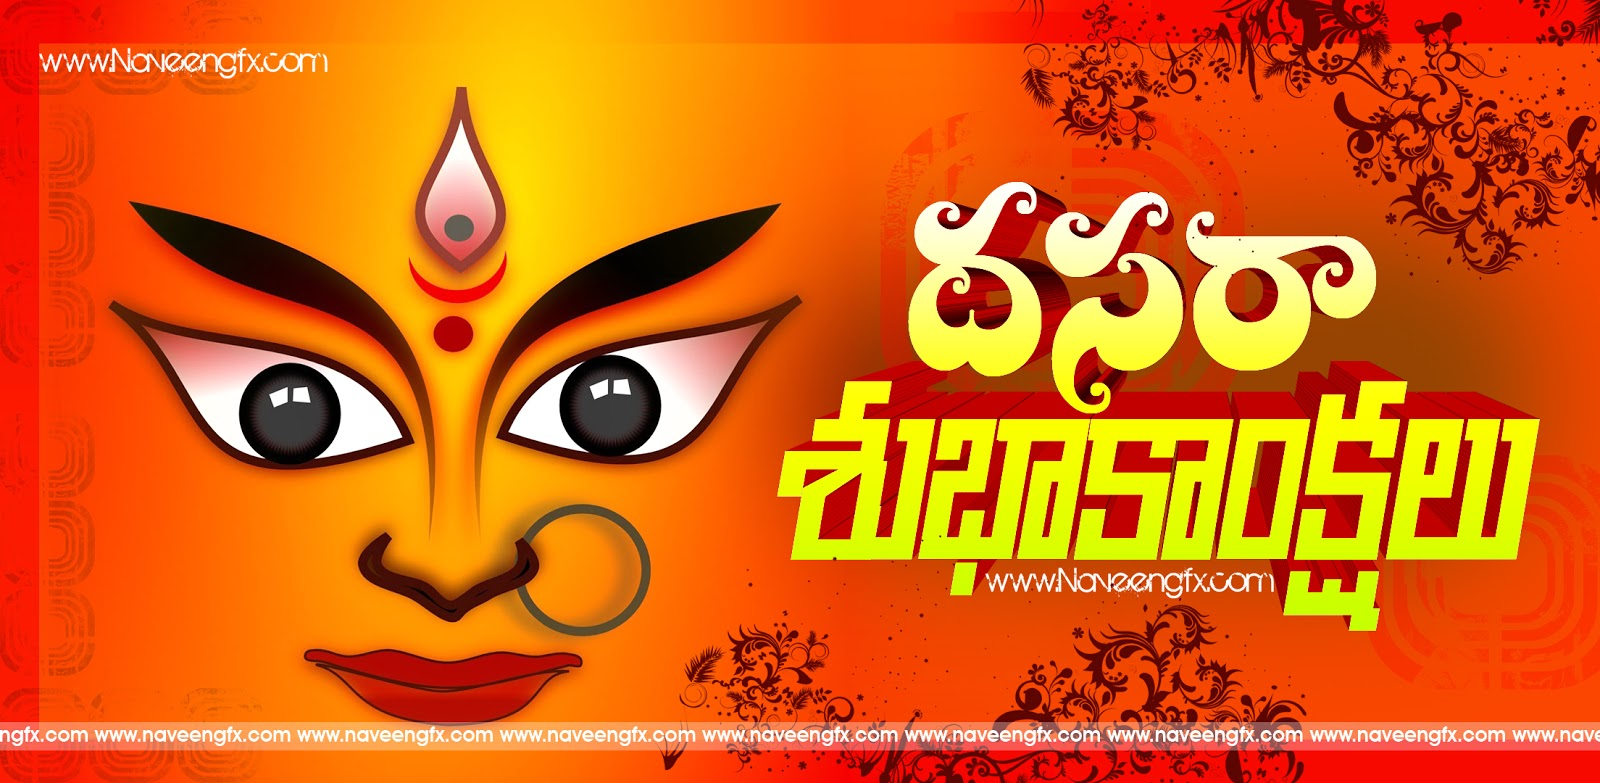 Happy vijaya dashami telugu picture quotes and greetings hd happy dussehra durga pooja telugu wishes quotes greetings and ecards for facebook m4hsunfo